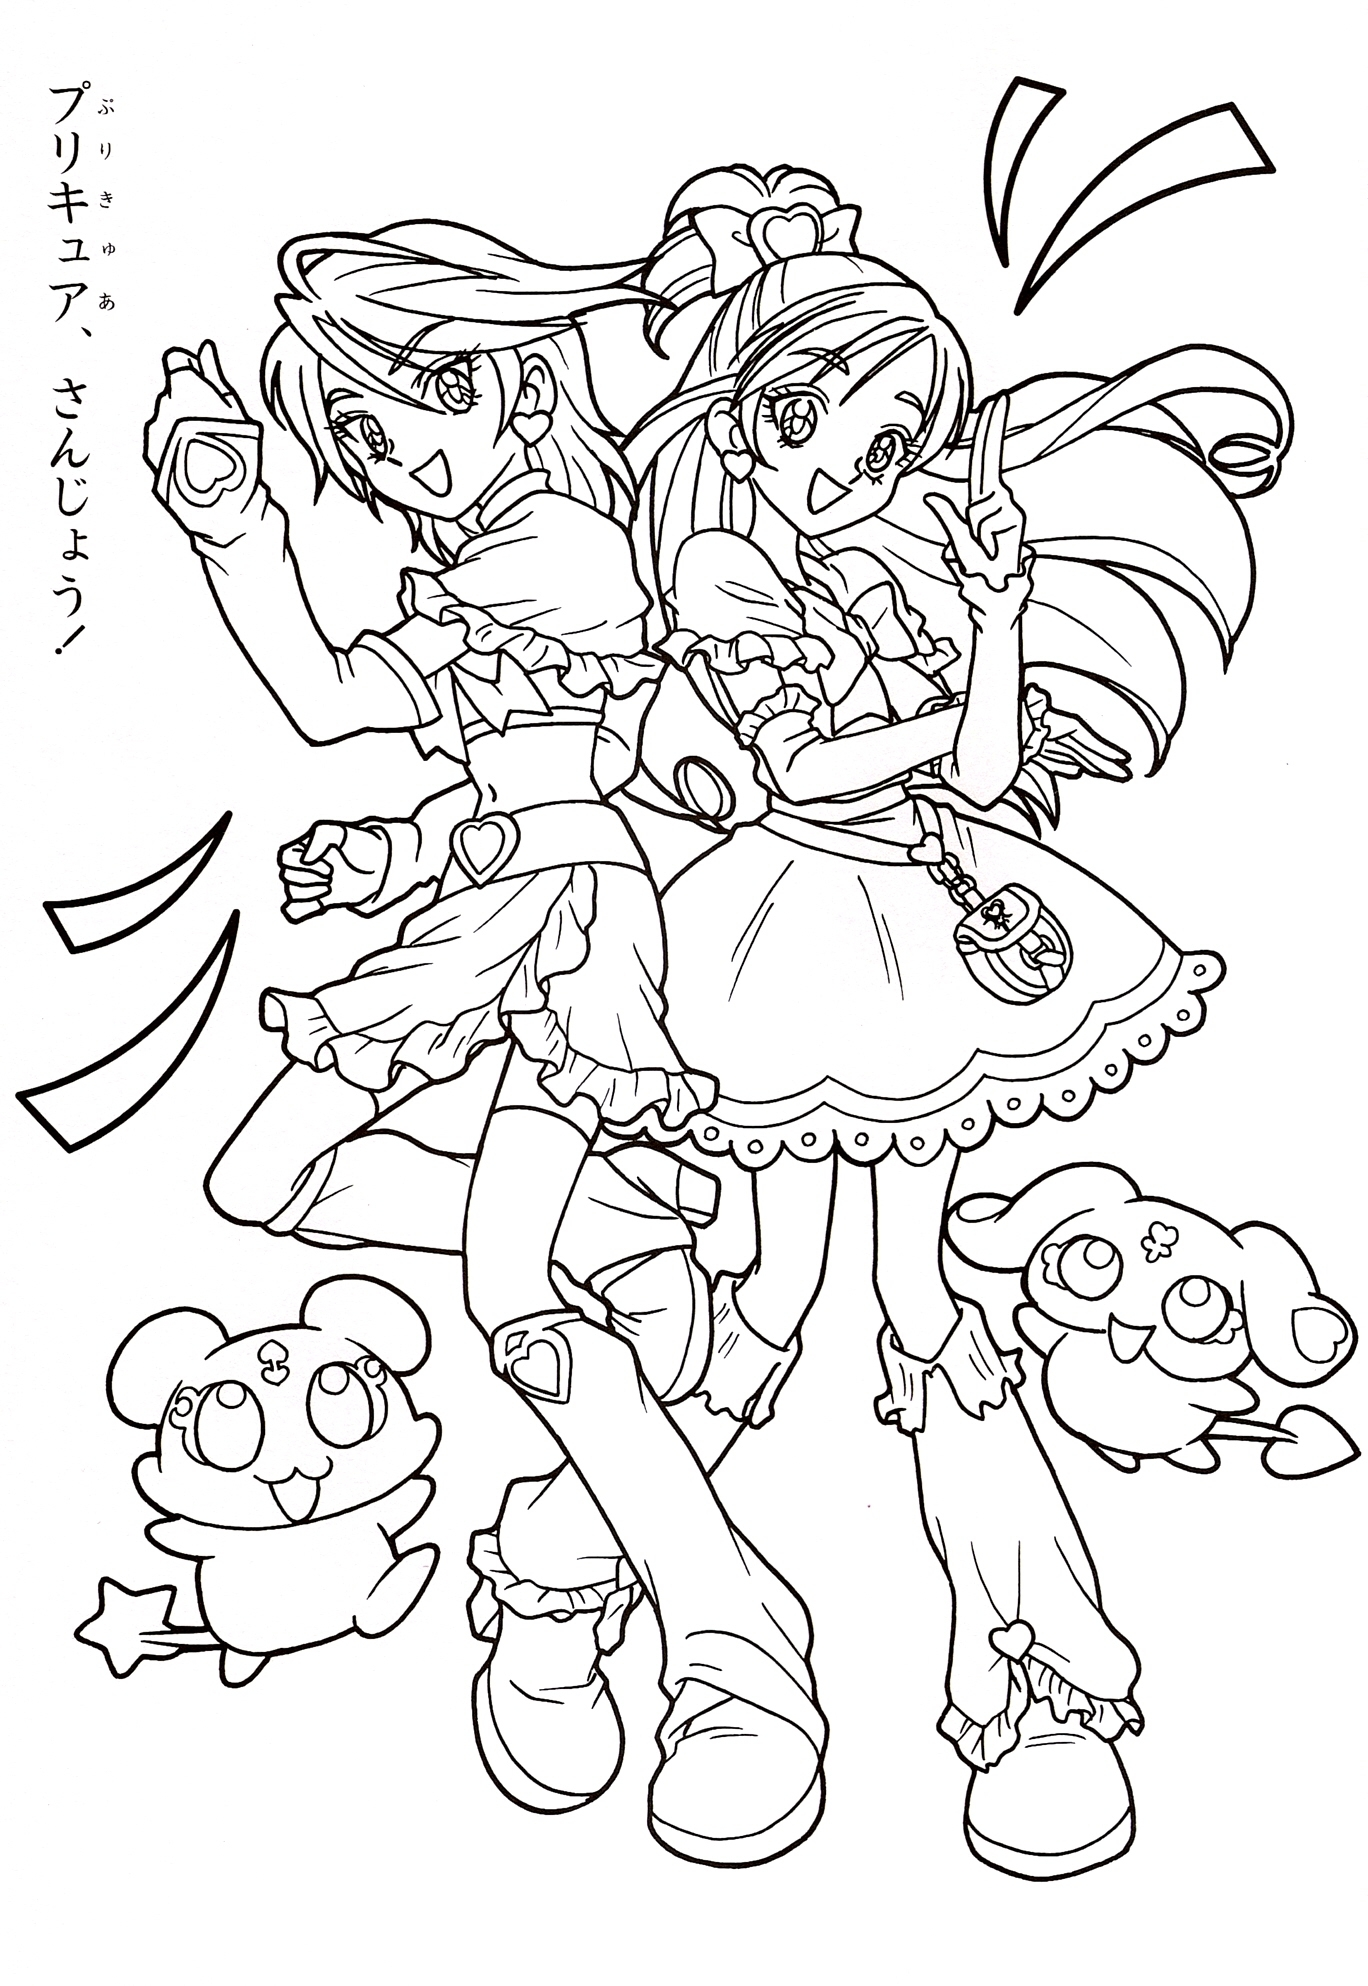 oasidelleanime precure coloring pages - photo #25